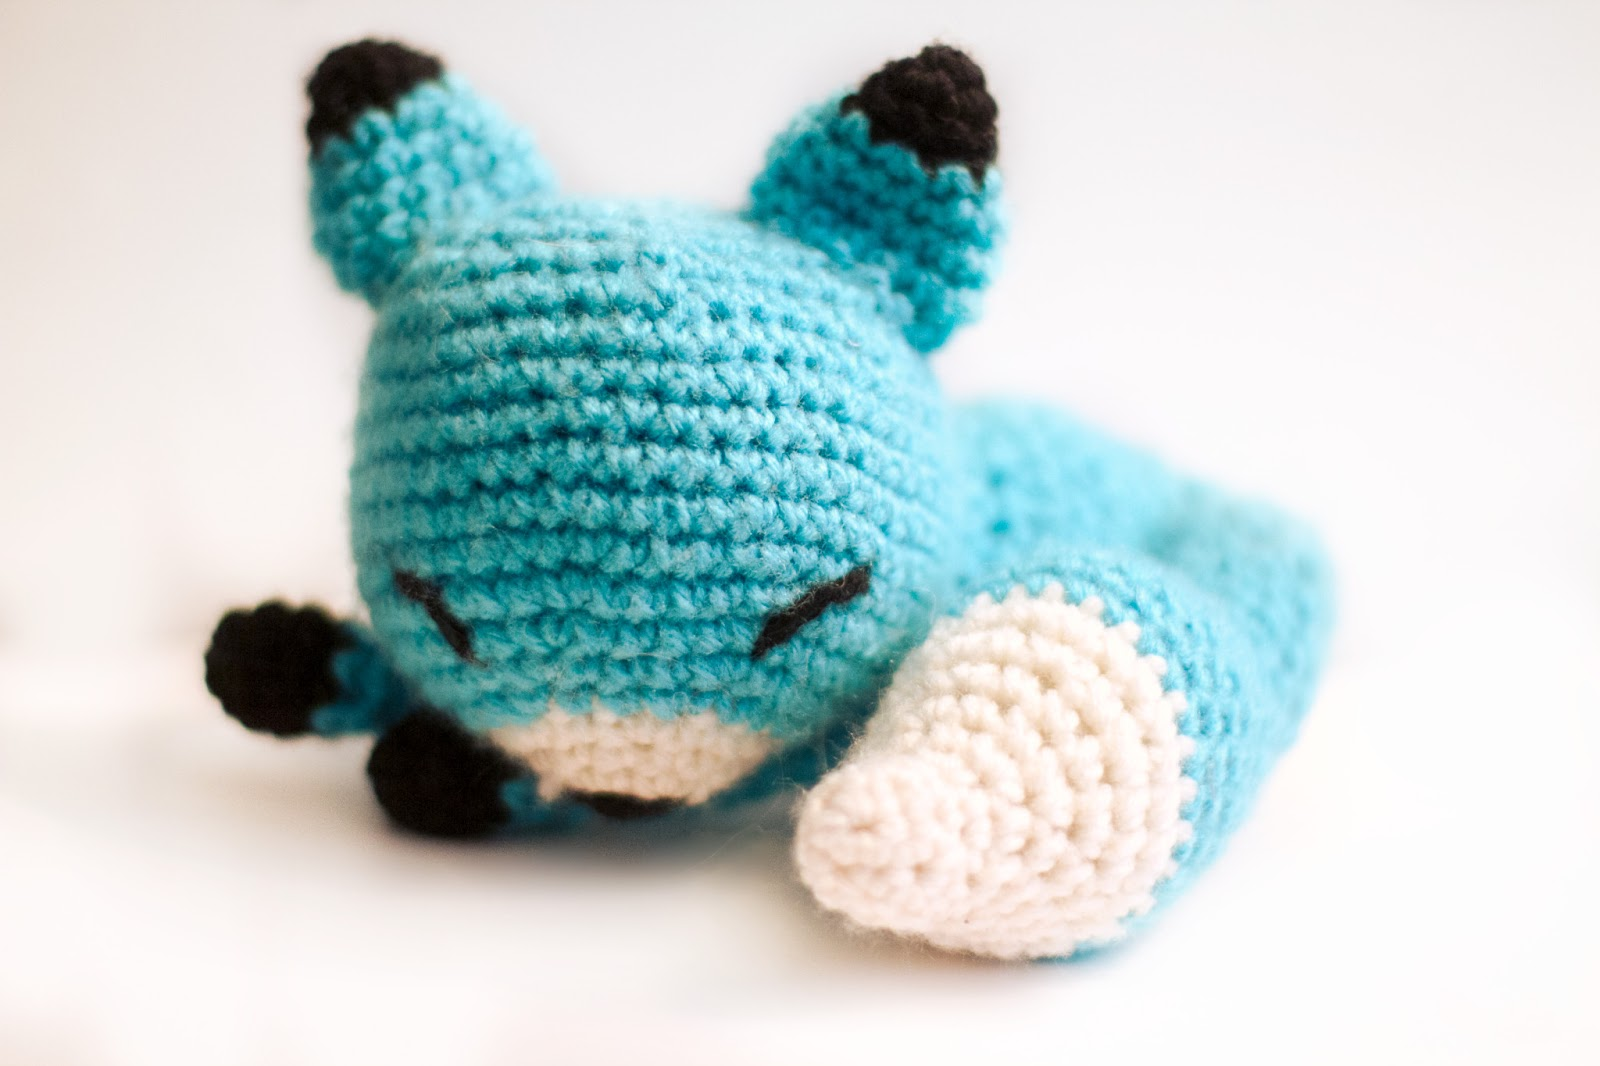 Tiny fox amigurumi pattern - Amigurumi Today | 1066x1600